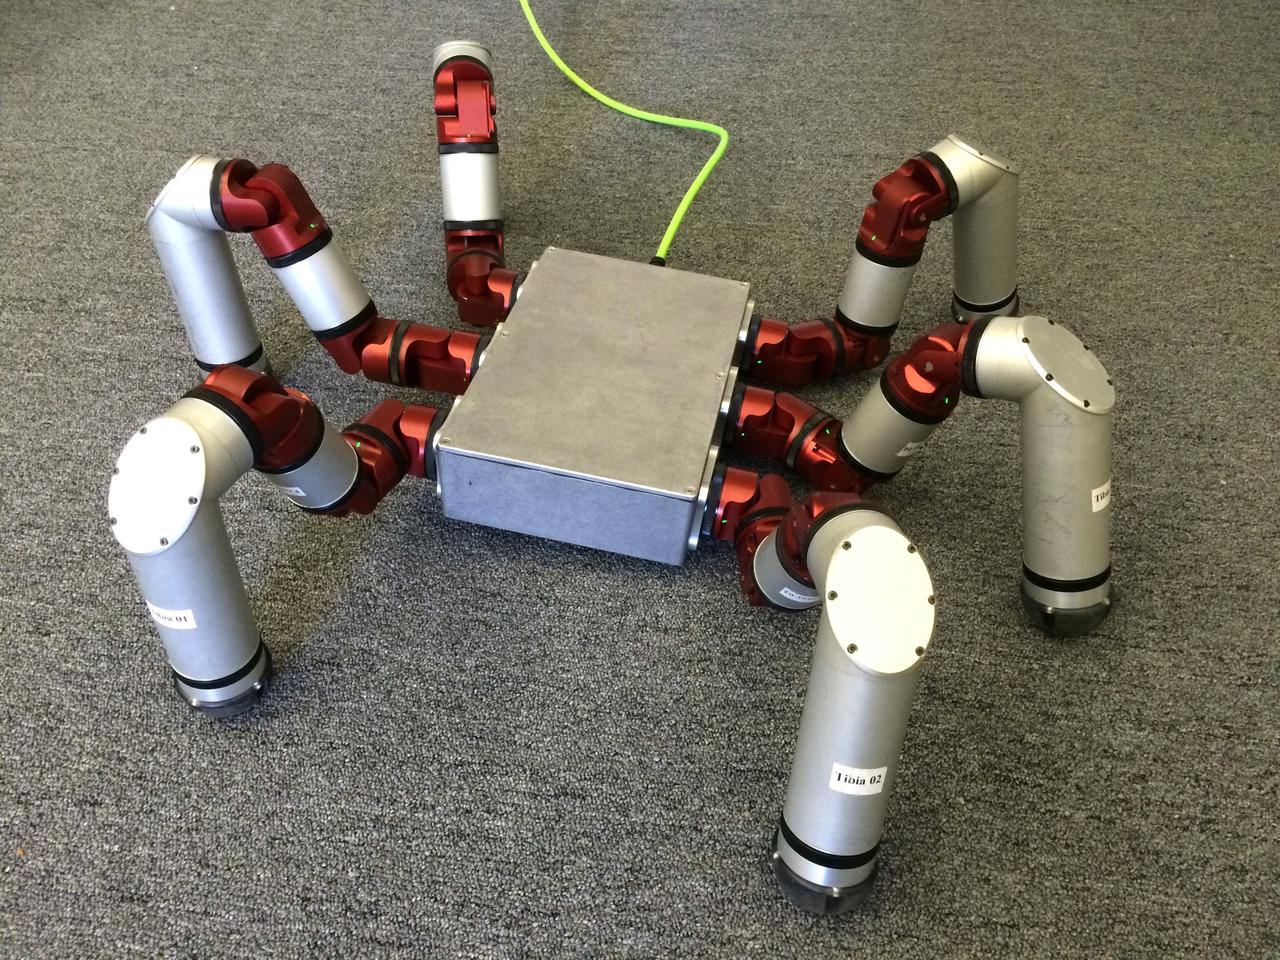 The Snake Monster robot's legs feature actuators that gauge and control the force it exerts, and the forces exerted upon it to help protect from high impacts